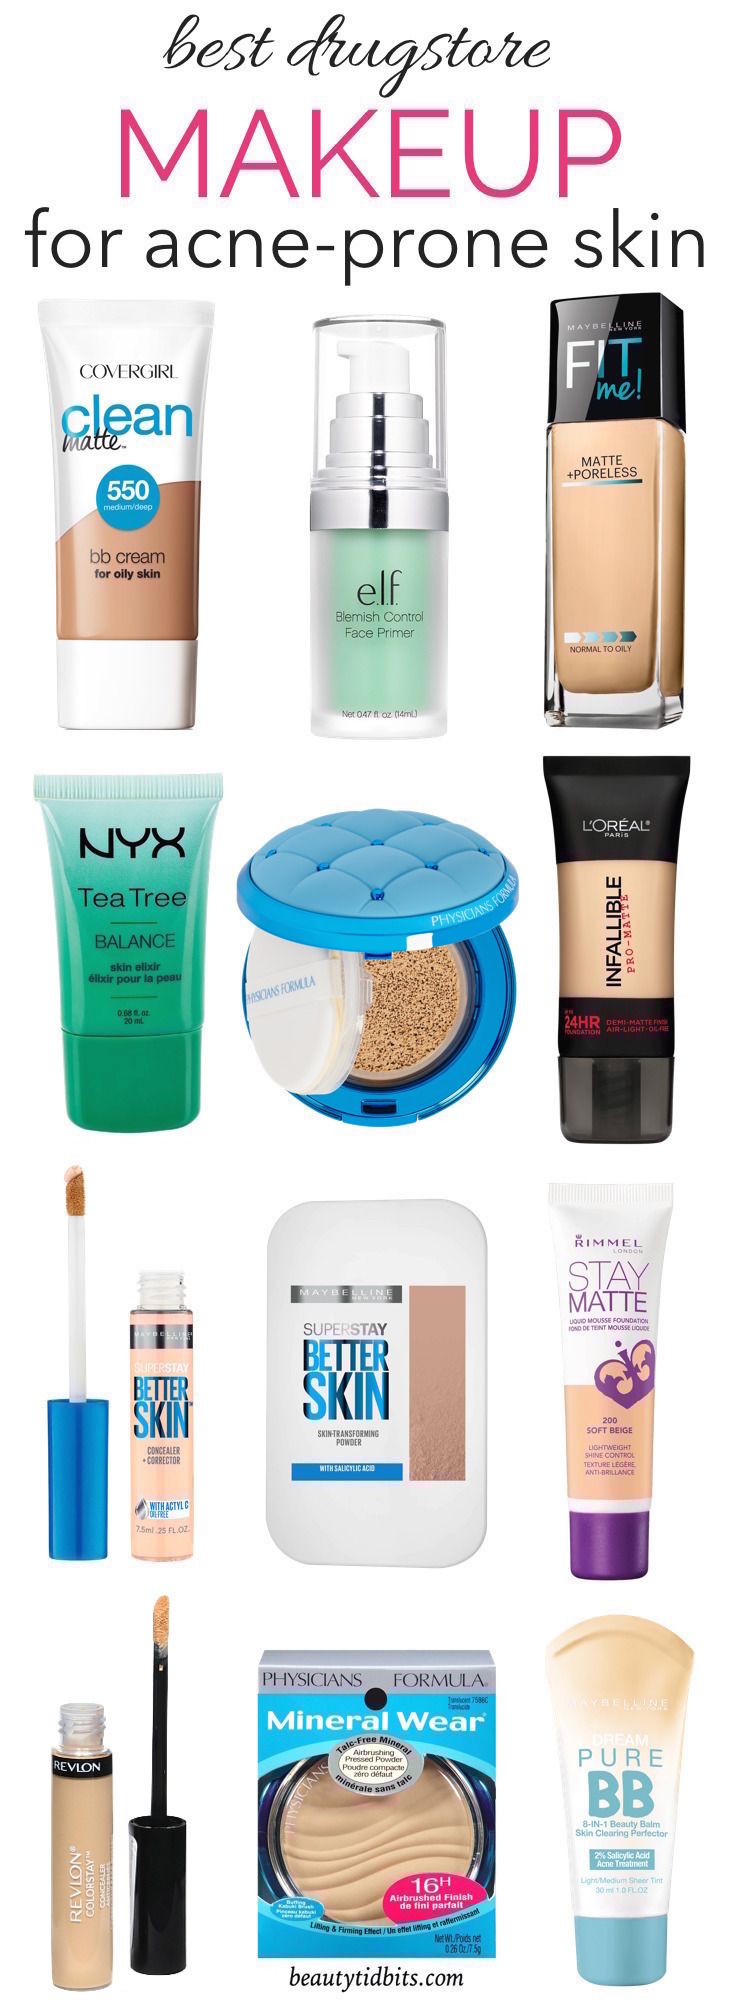 From foundations and BB creams to concealers, this is the ultimate guide to the be